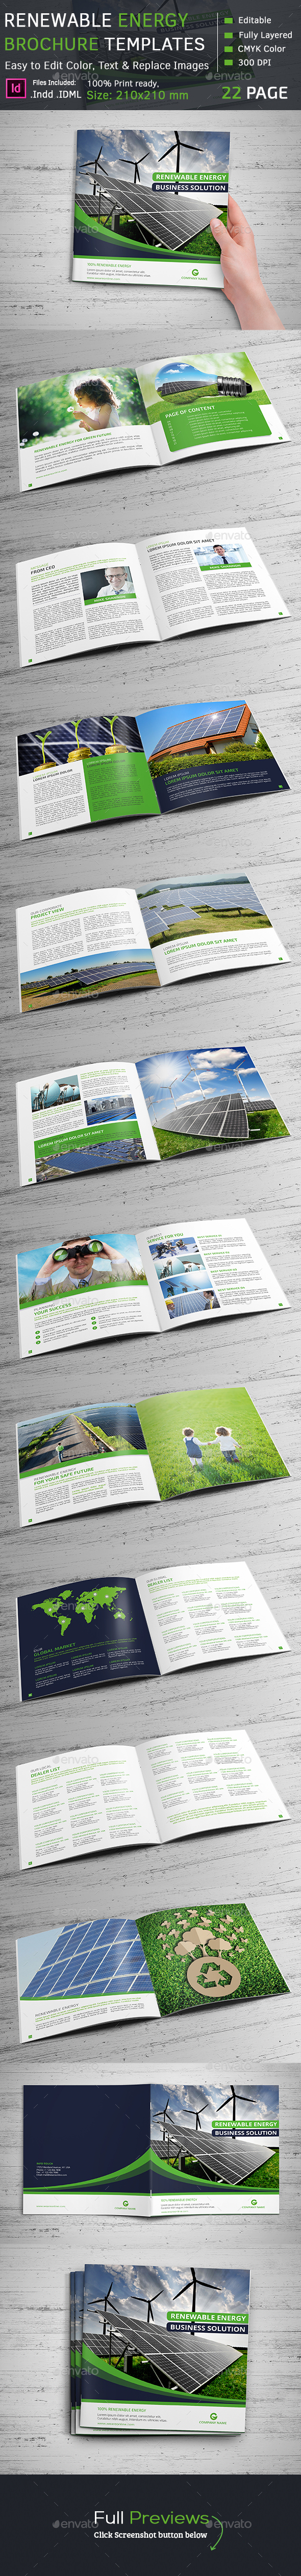 Renewable Energy Square Brochure - Corporate Brochures